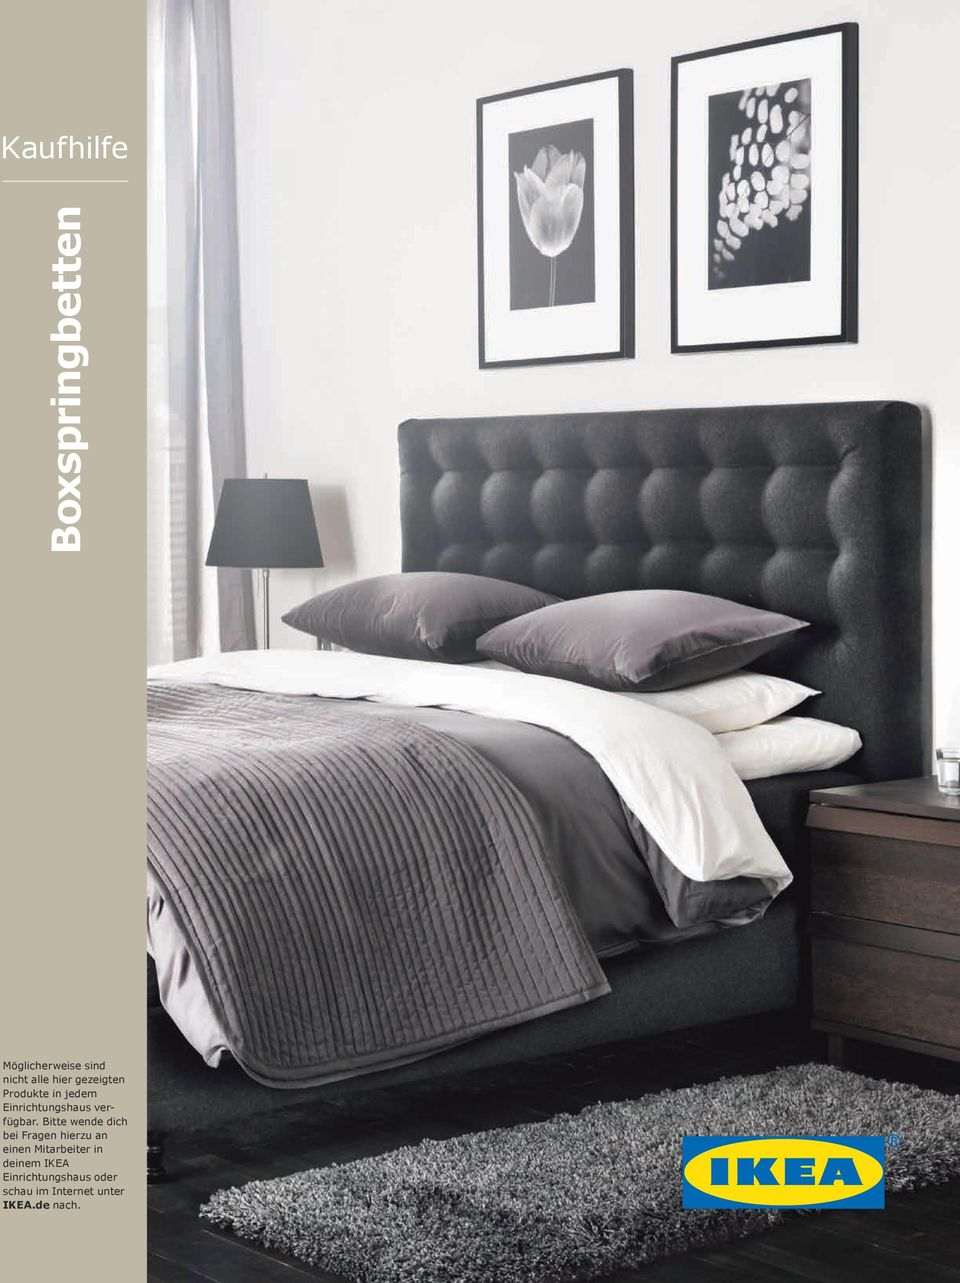 boxspringbetten kaufhilfe m glicherweise sind nicht alle hier gezeigten produkte in jedem pdf. Black Bedroom Furniture Sets. Home Design Ideas